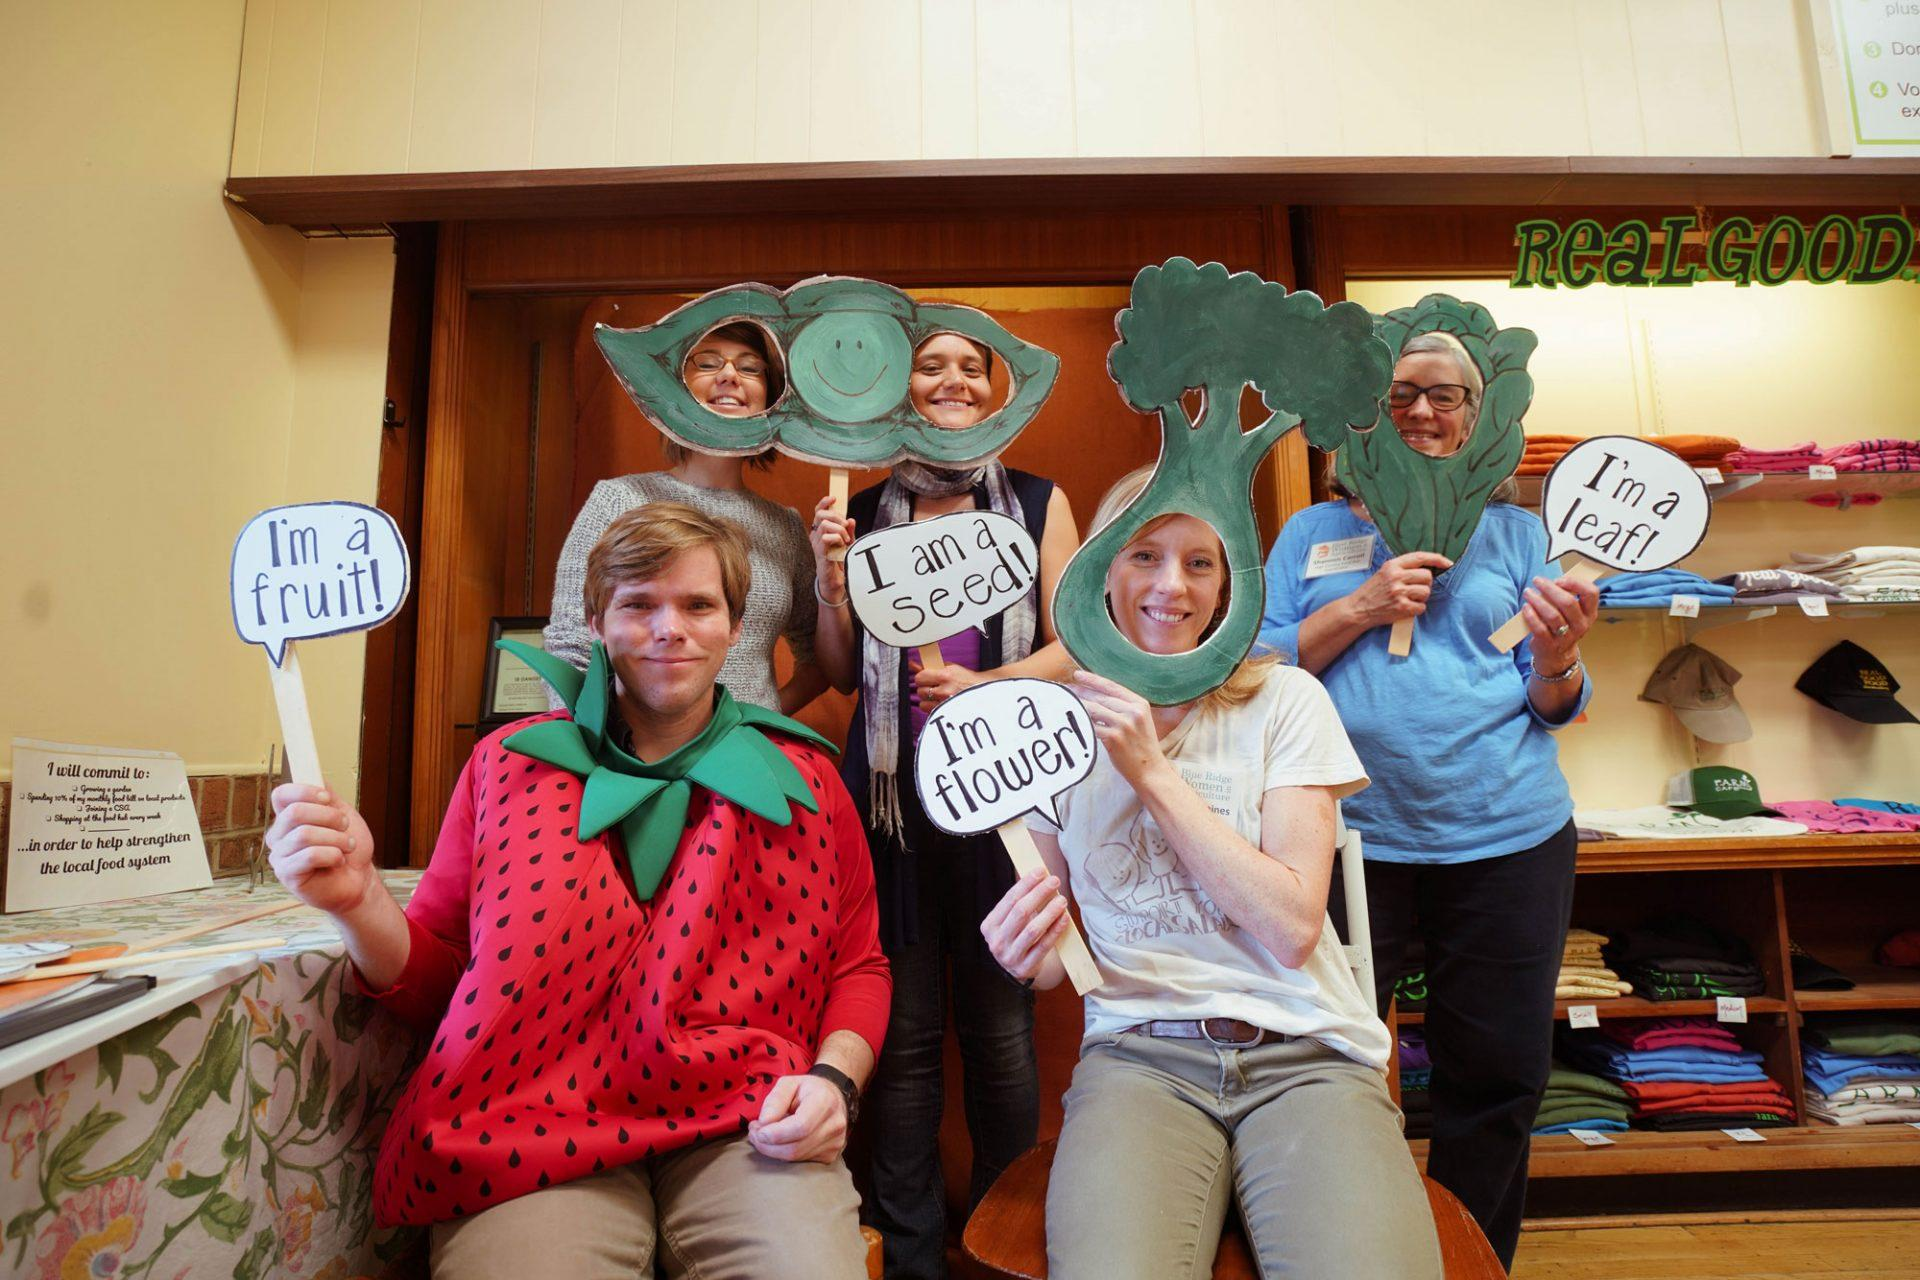 The Blue Ridge Women in Agriculture staff poses for a photo at F.A.R.M Cafe. Dave Walker, Director of Programs, stands out in his strawberry costume.